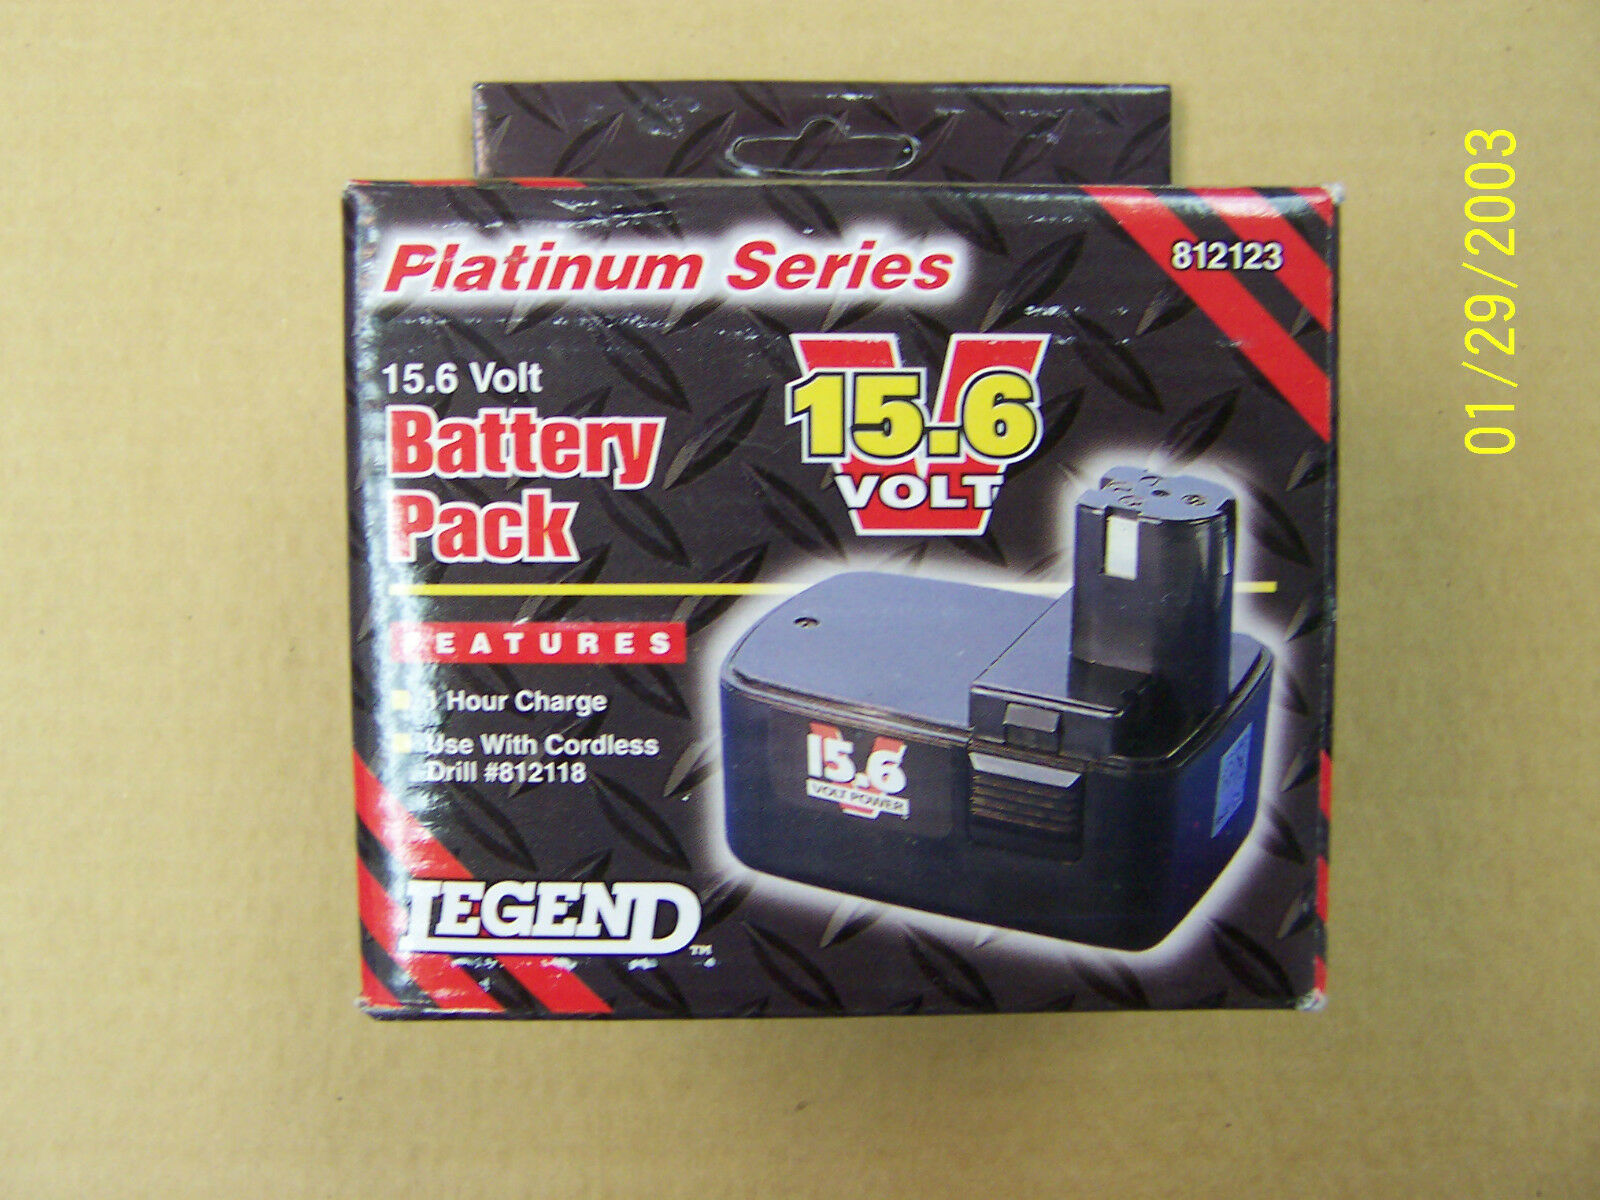 rebuild your own battery pack for 15 6v cordless drill 20 09